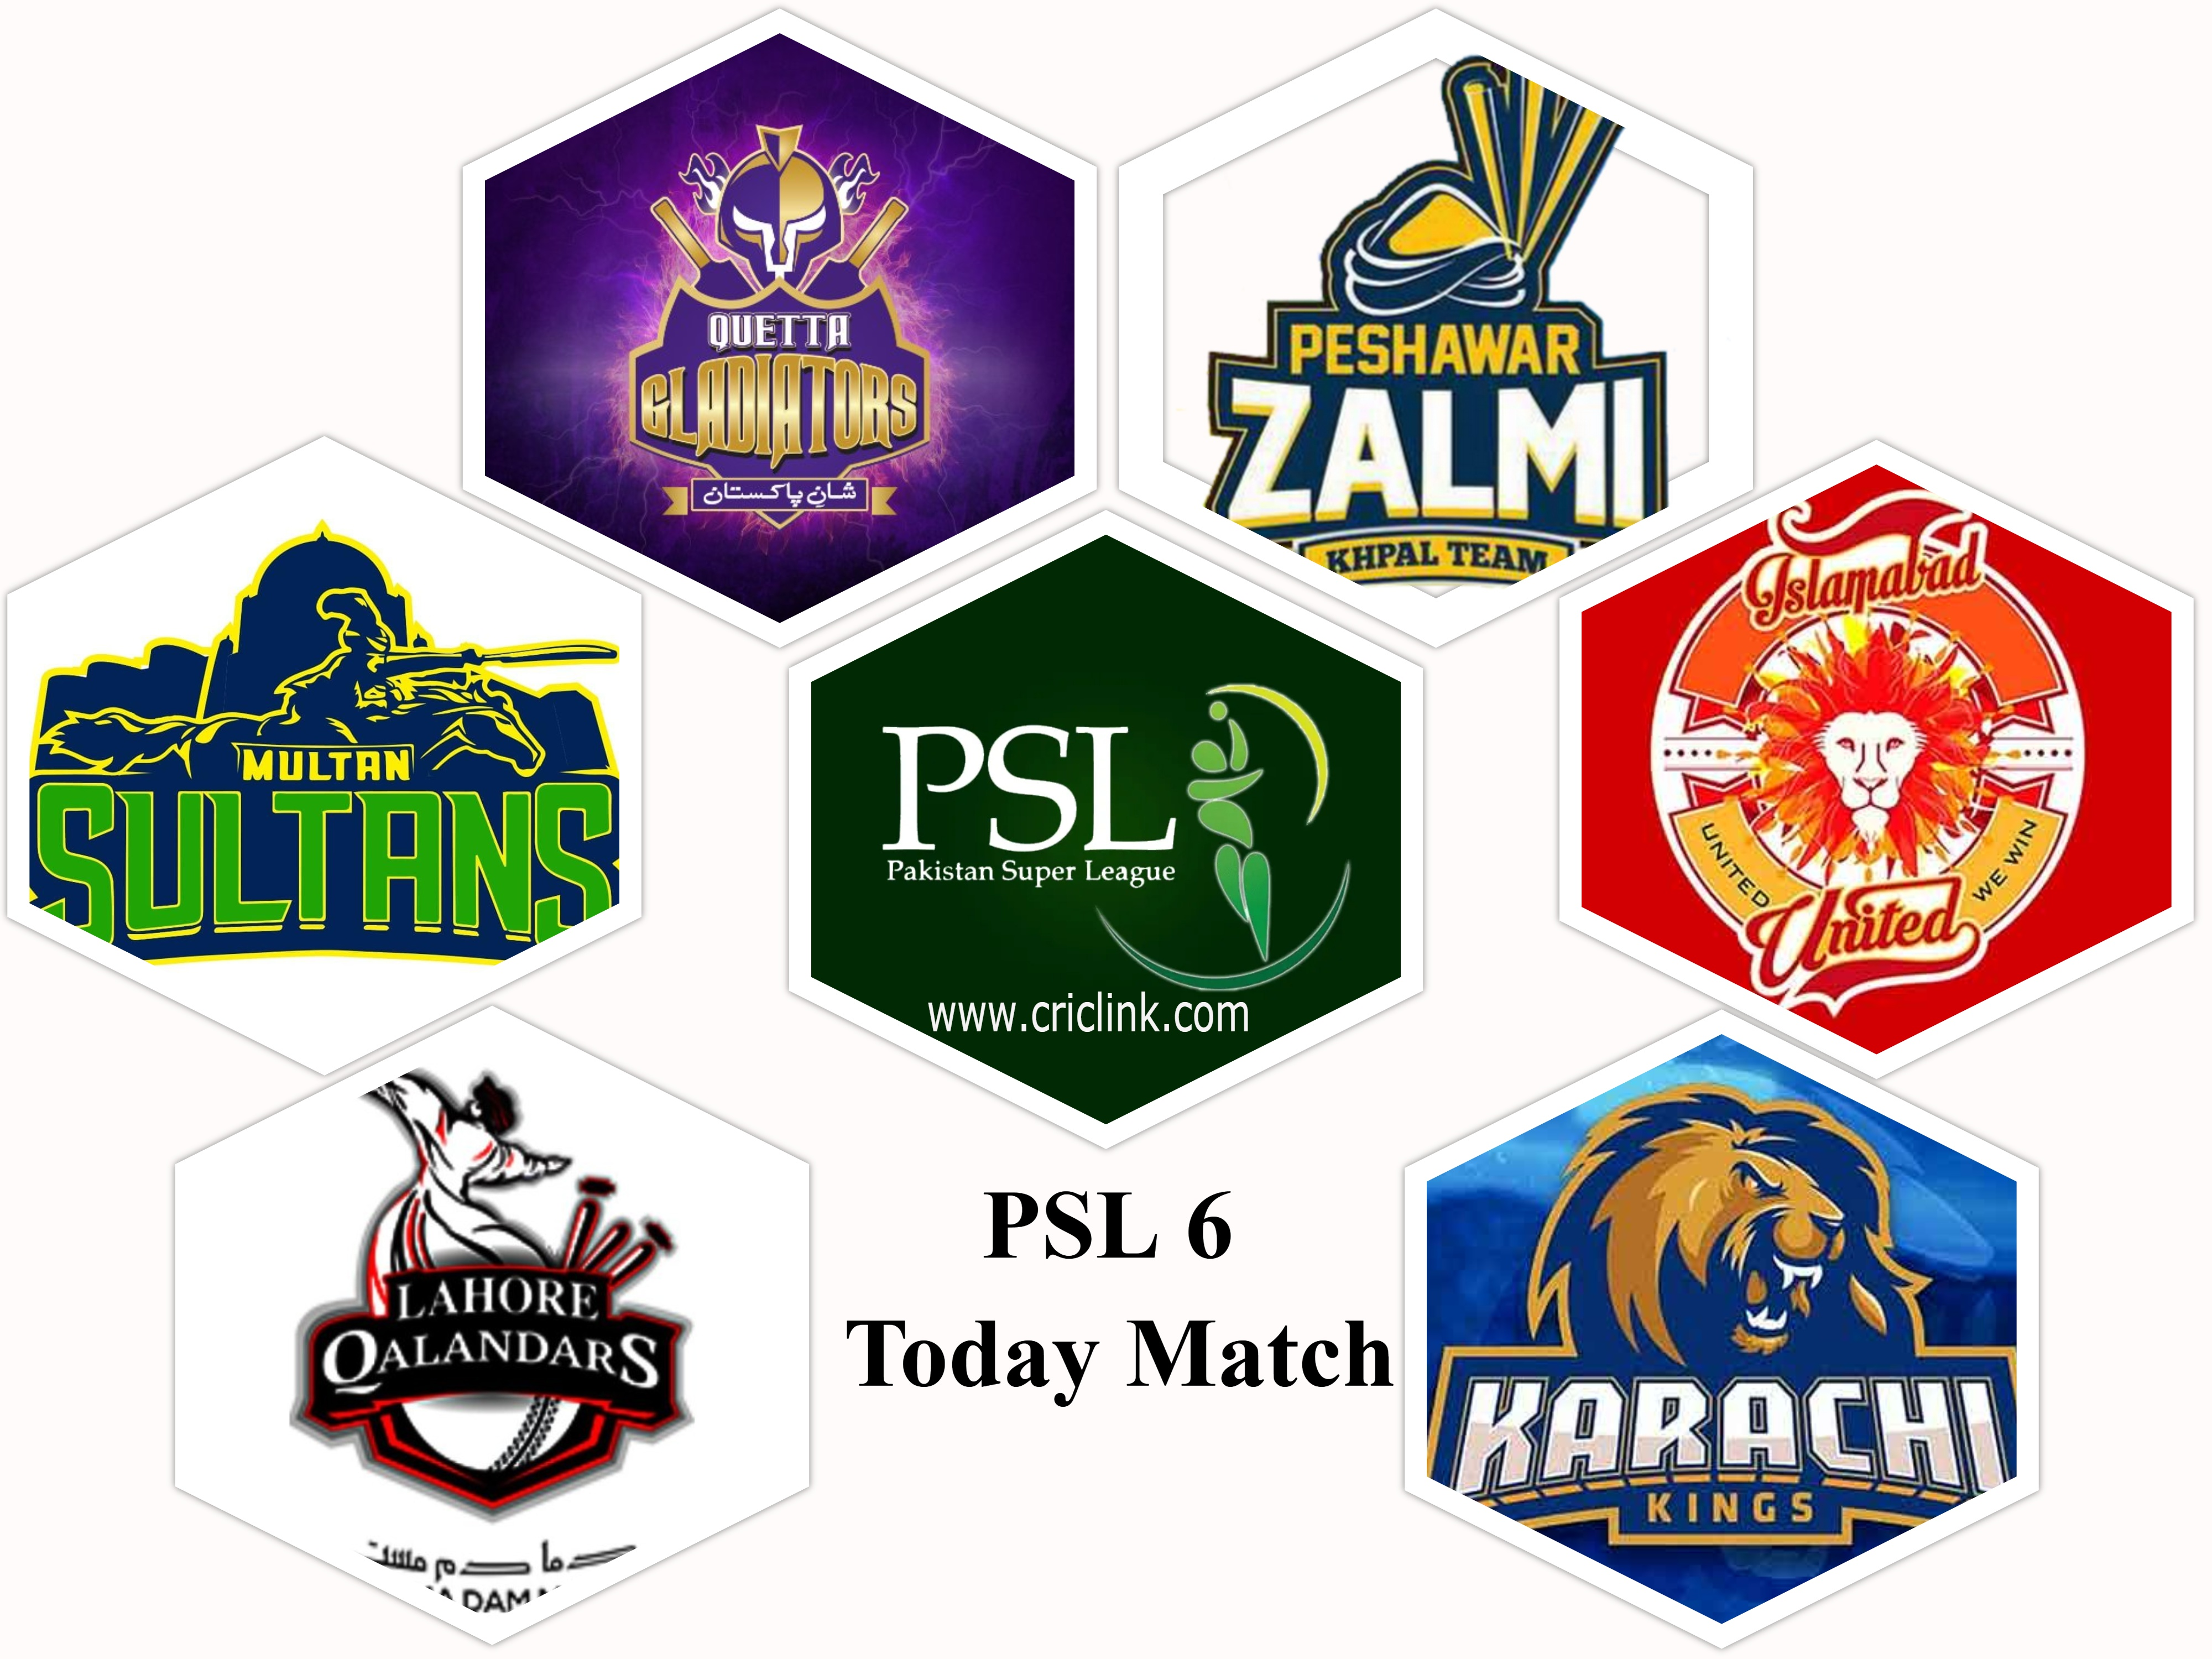 PSL 6 Today Match